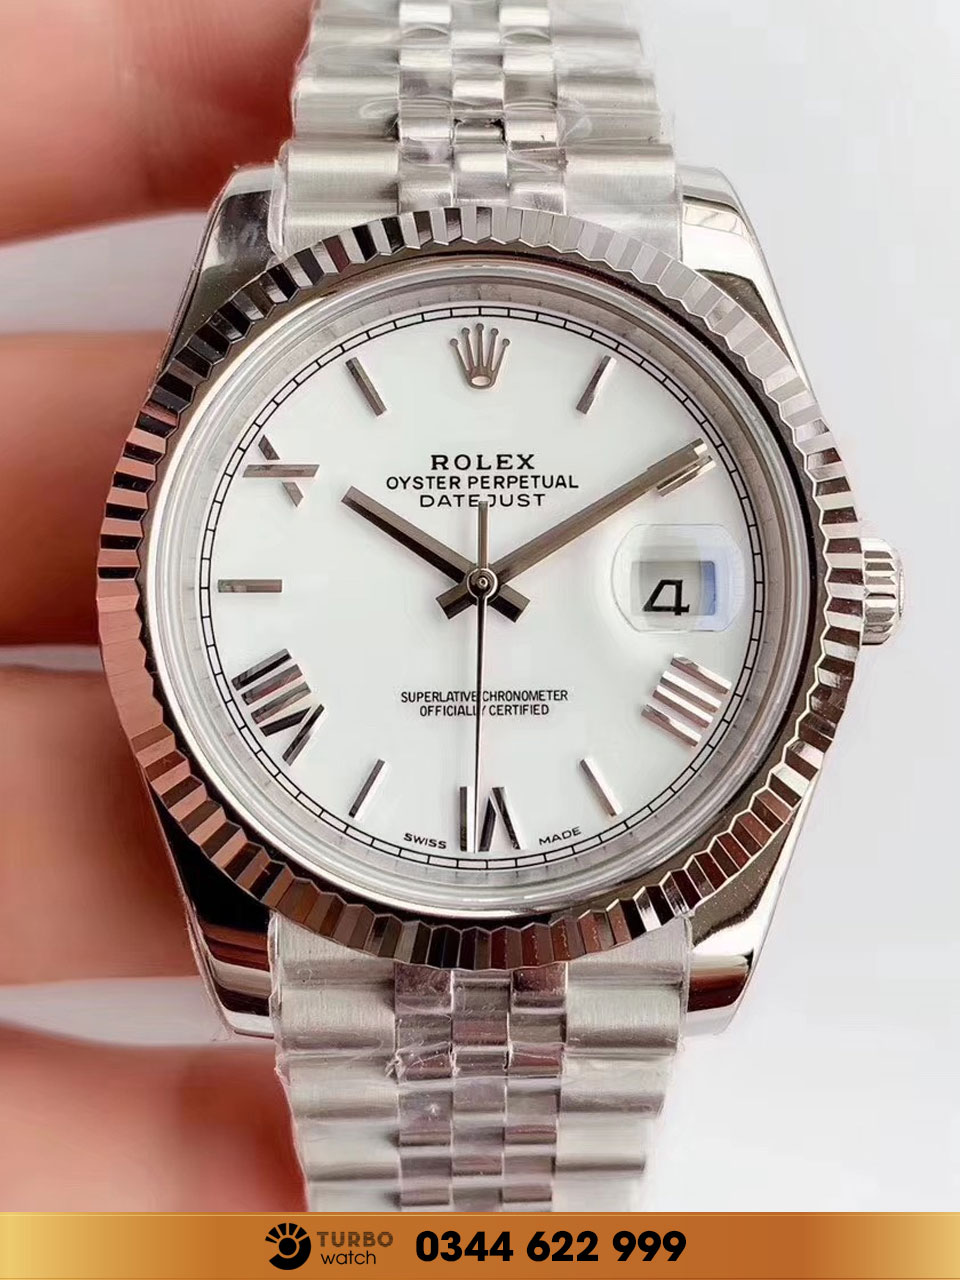 Rolex Datejust 41 126334 fake 1-1 cao cấp